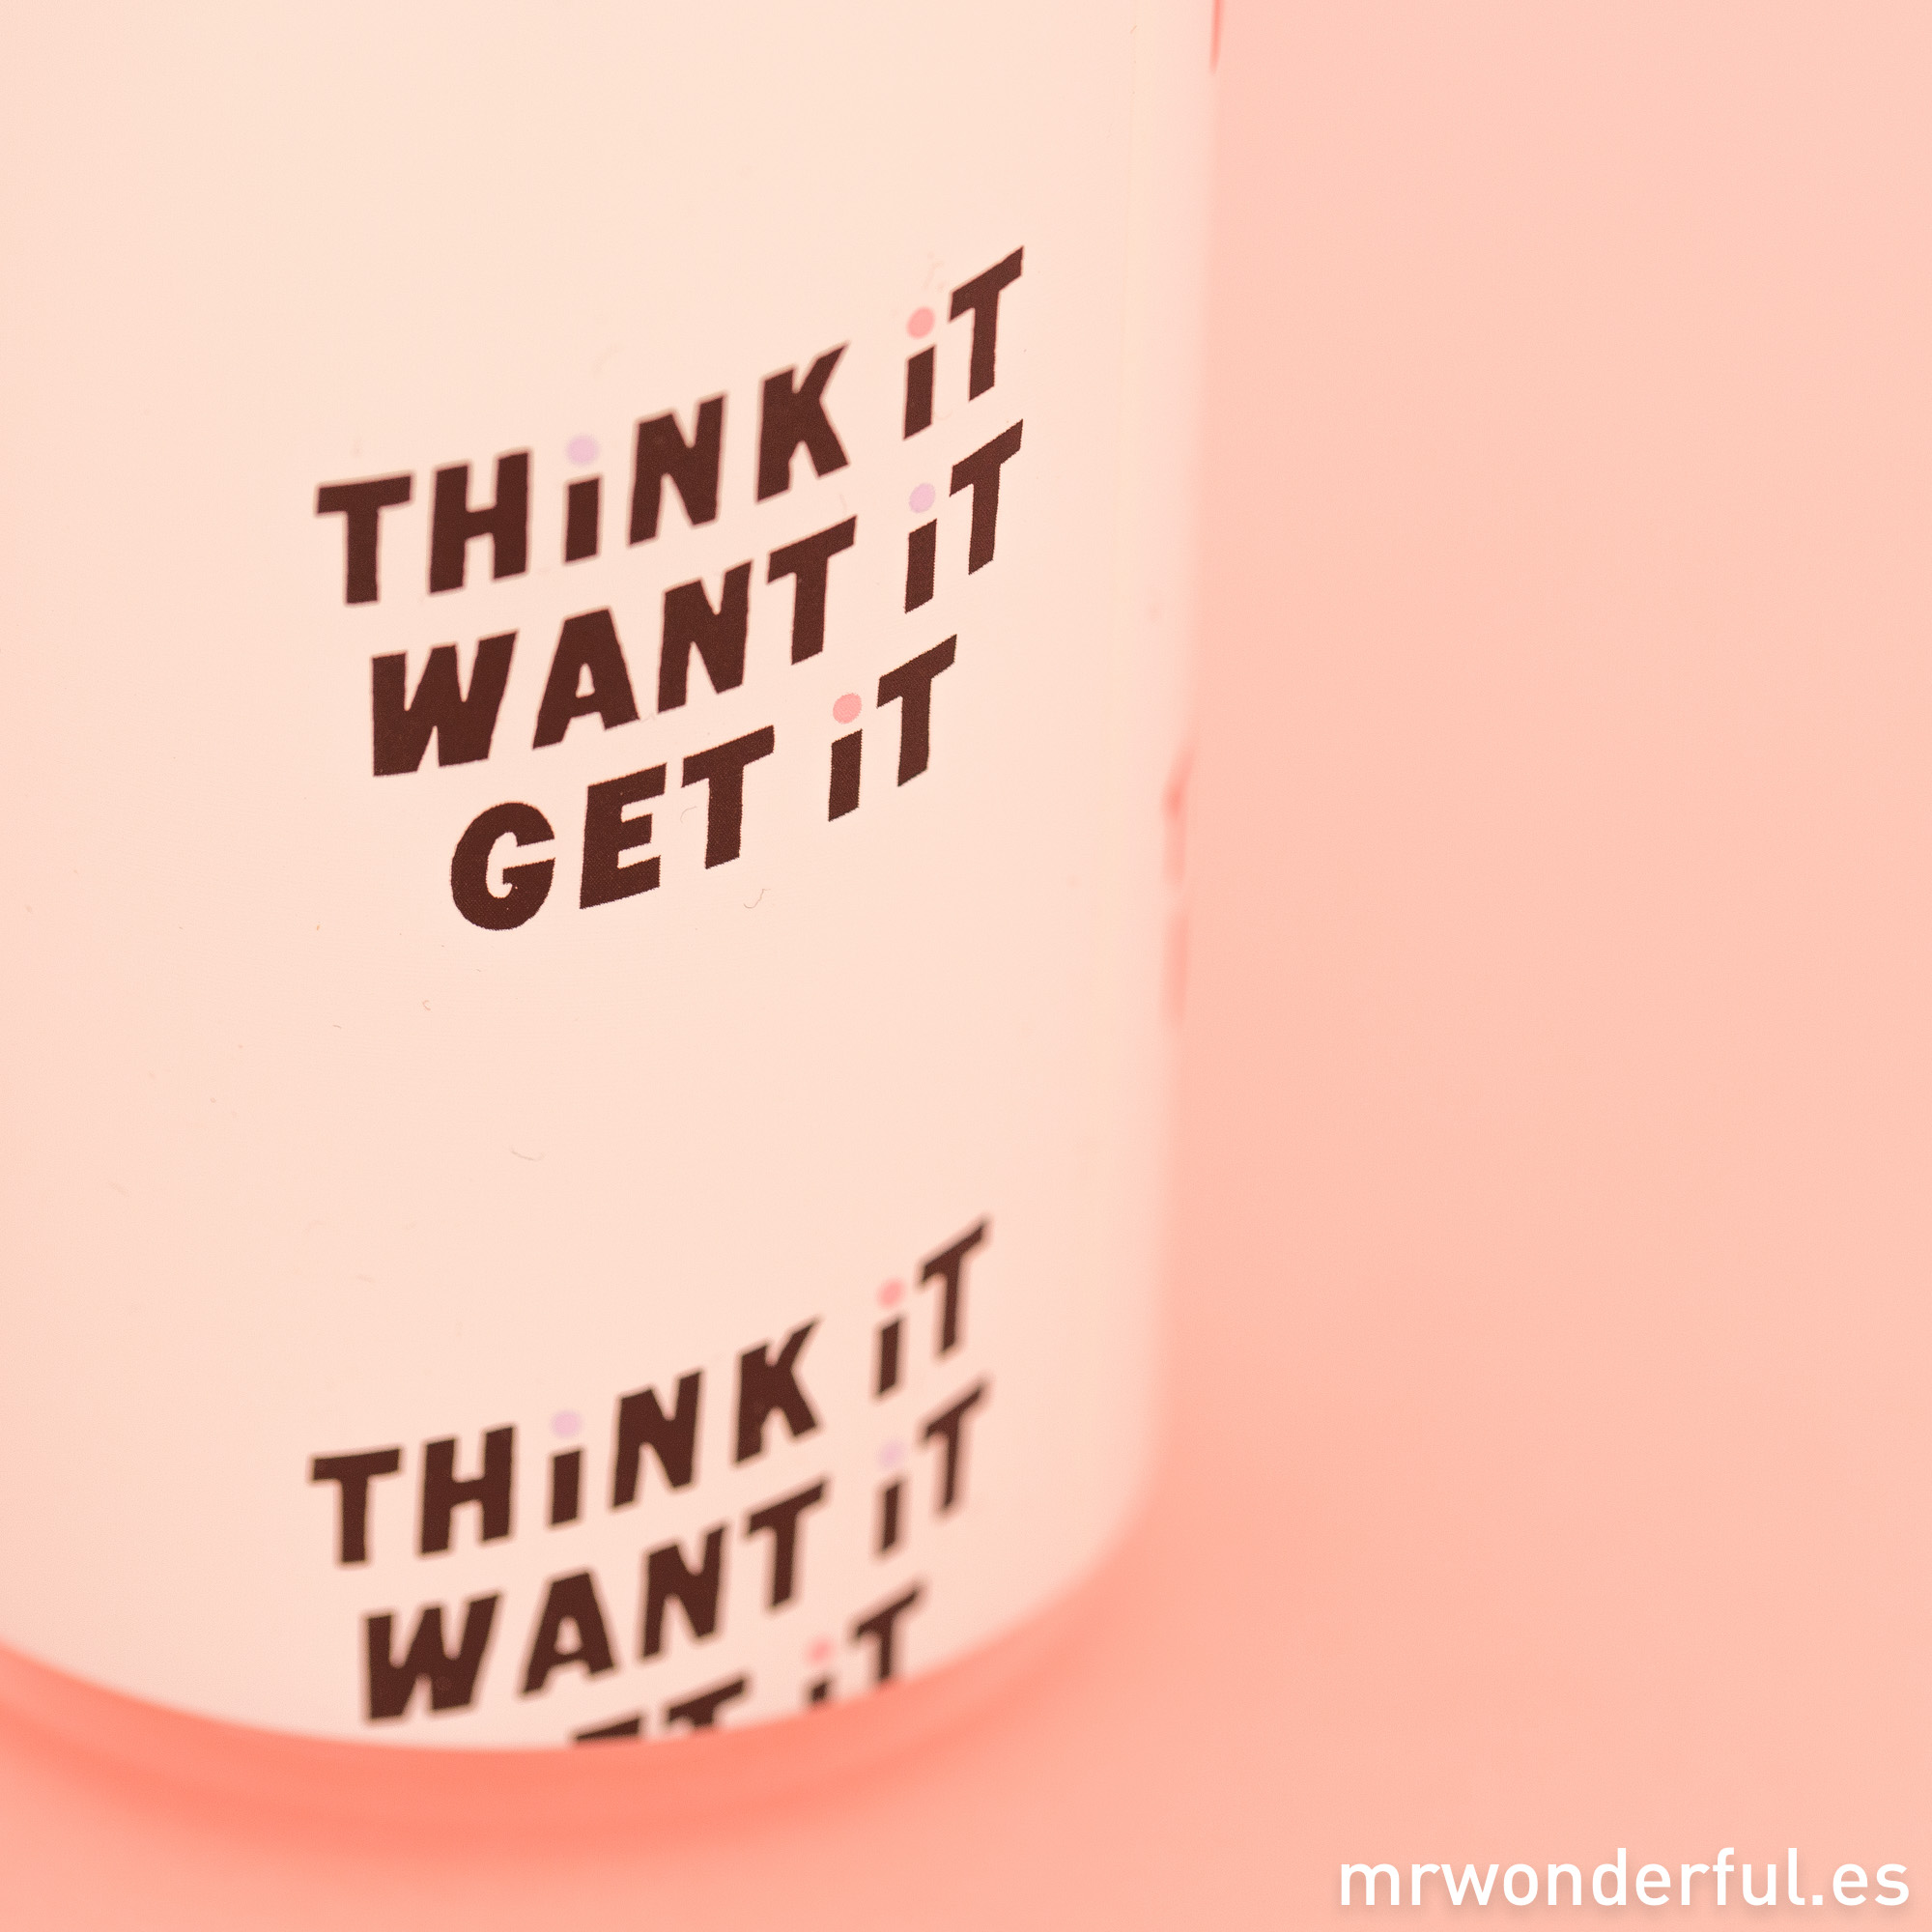 mrwonderful_PRA02813_Botella-para-deporte-Think-it-want-it-get-it-5